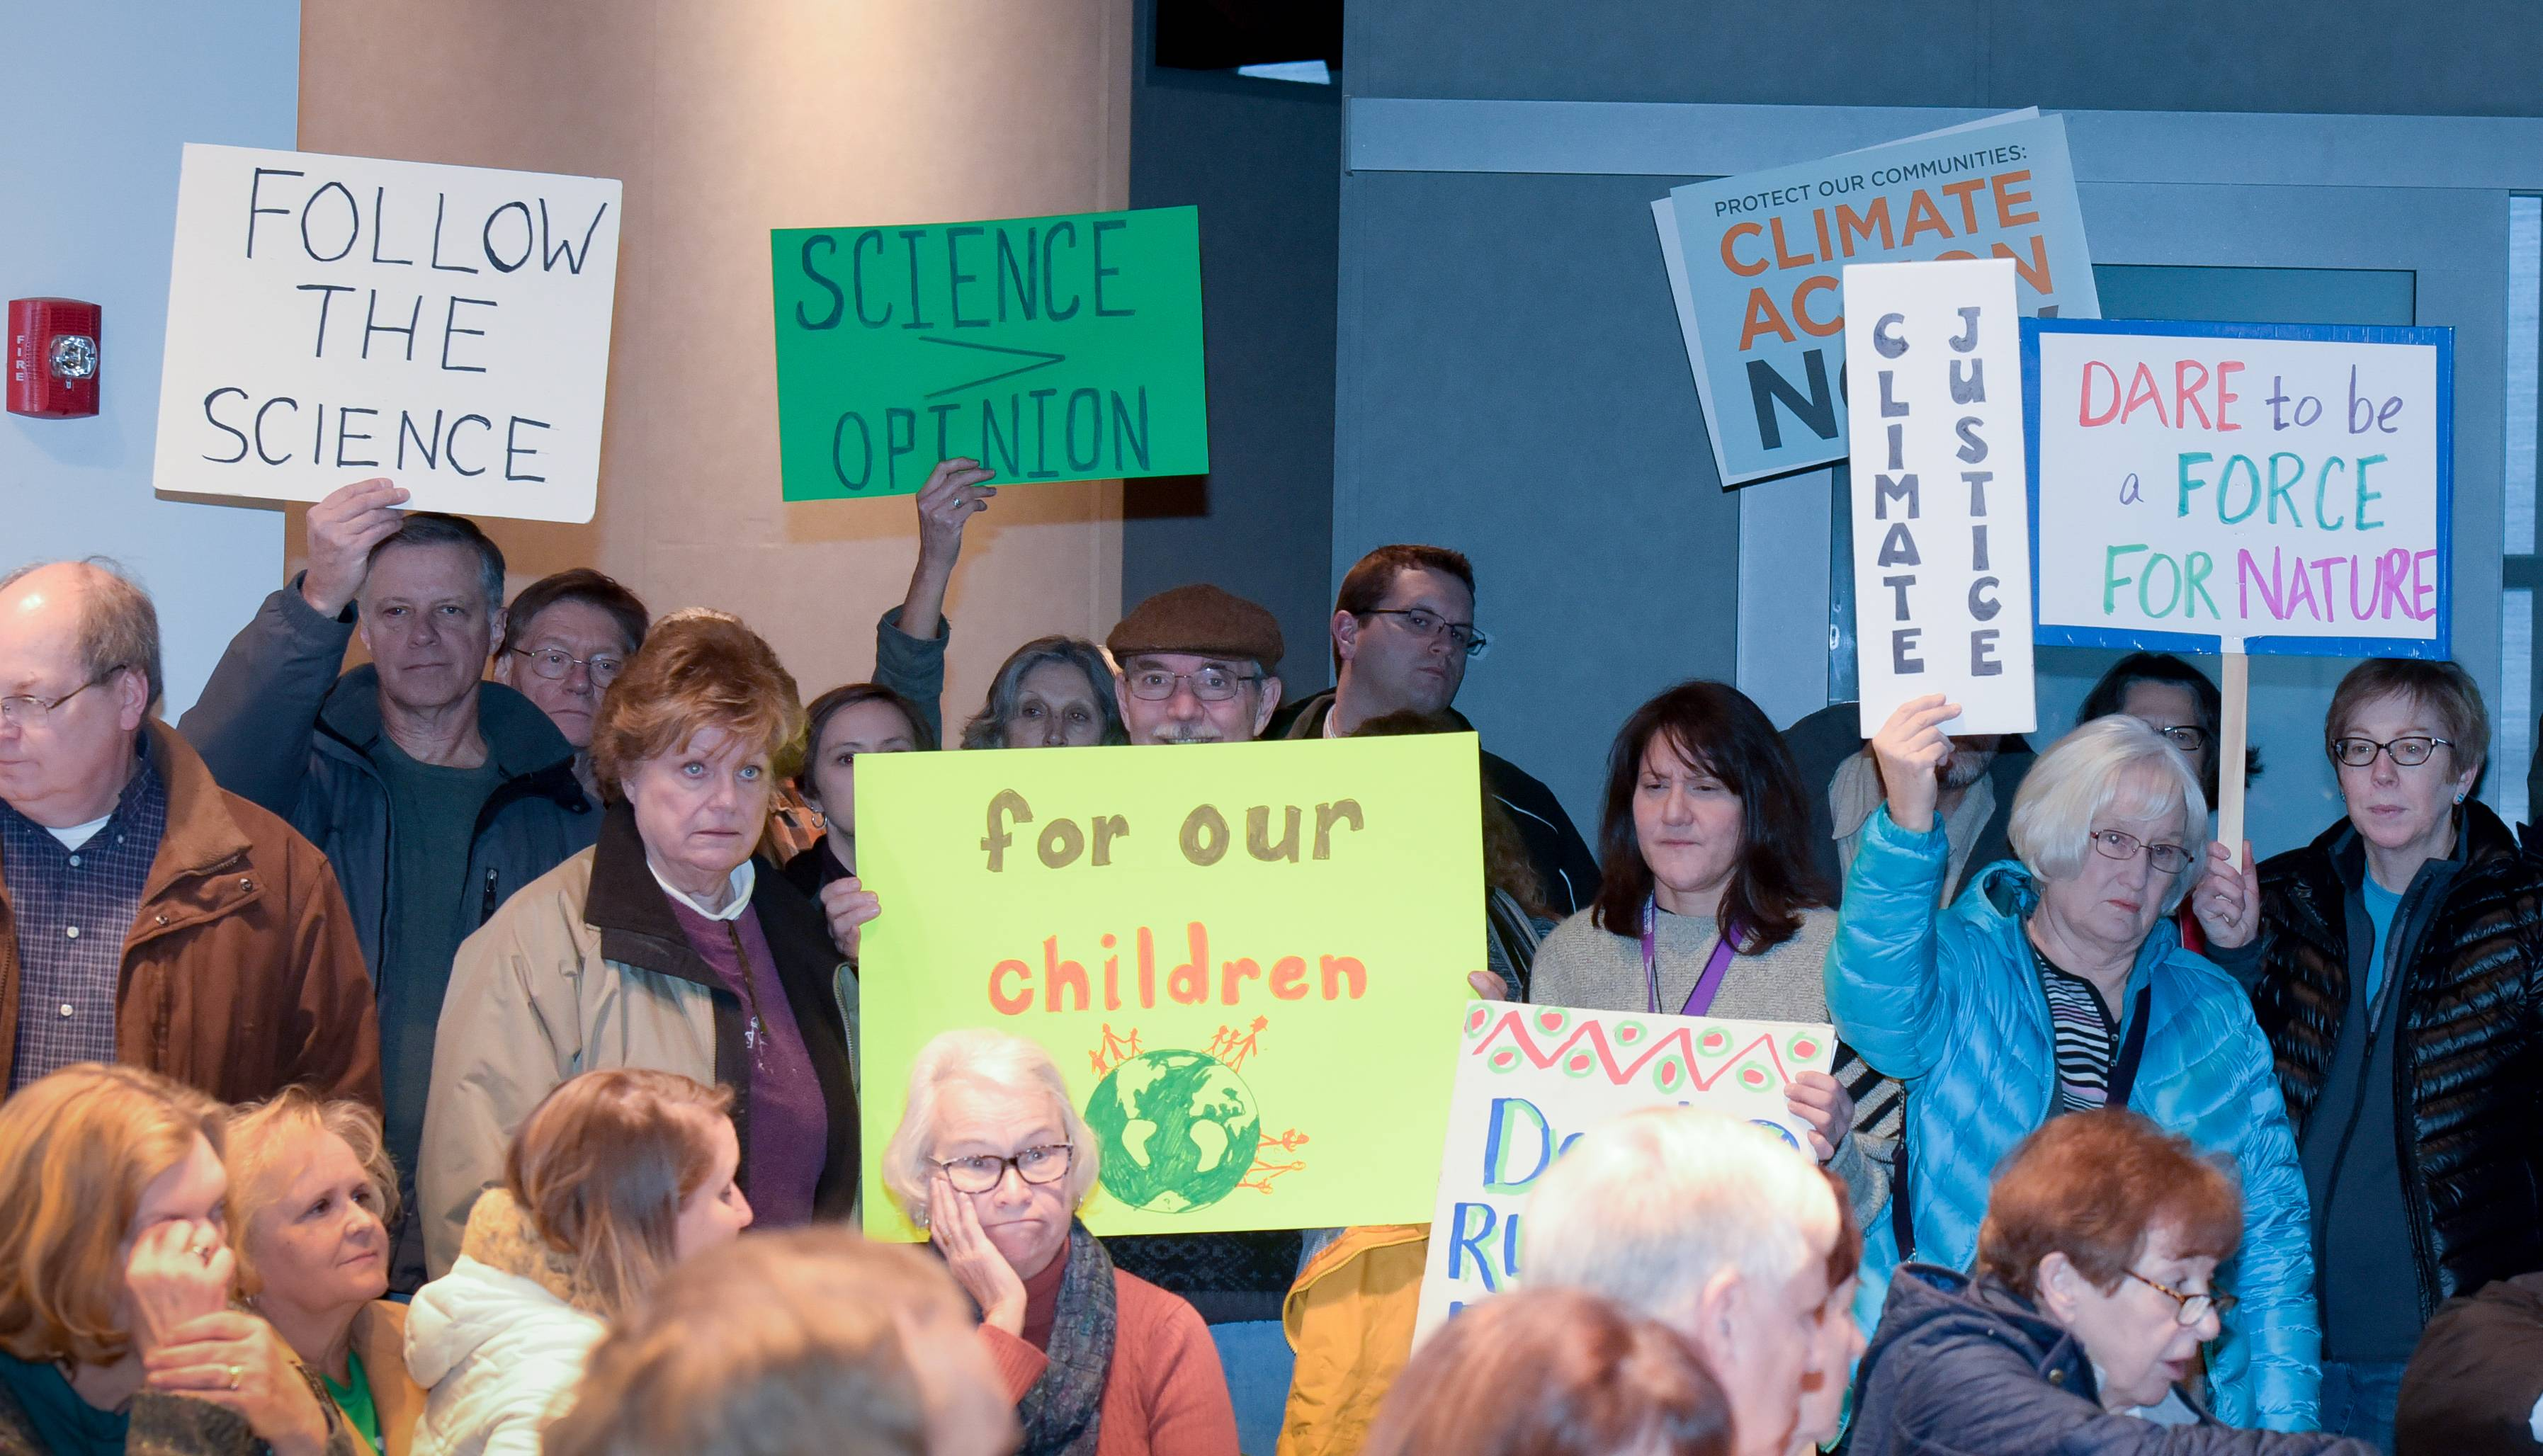 Local Sierra Club chapters and other groups organized a climate change rally where people dropped off postcards at U.S. Rep. Peter Roskam's office in West Chicago.